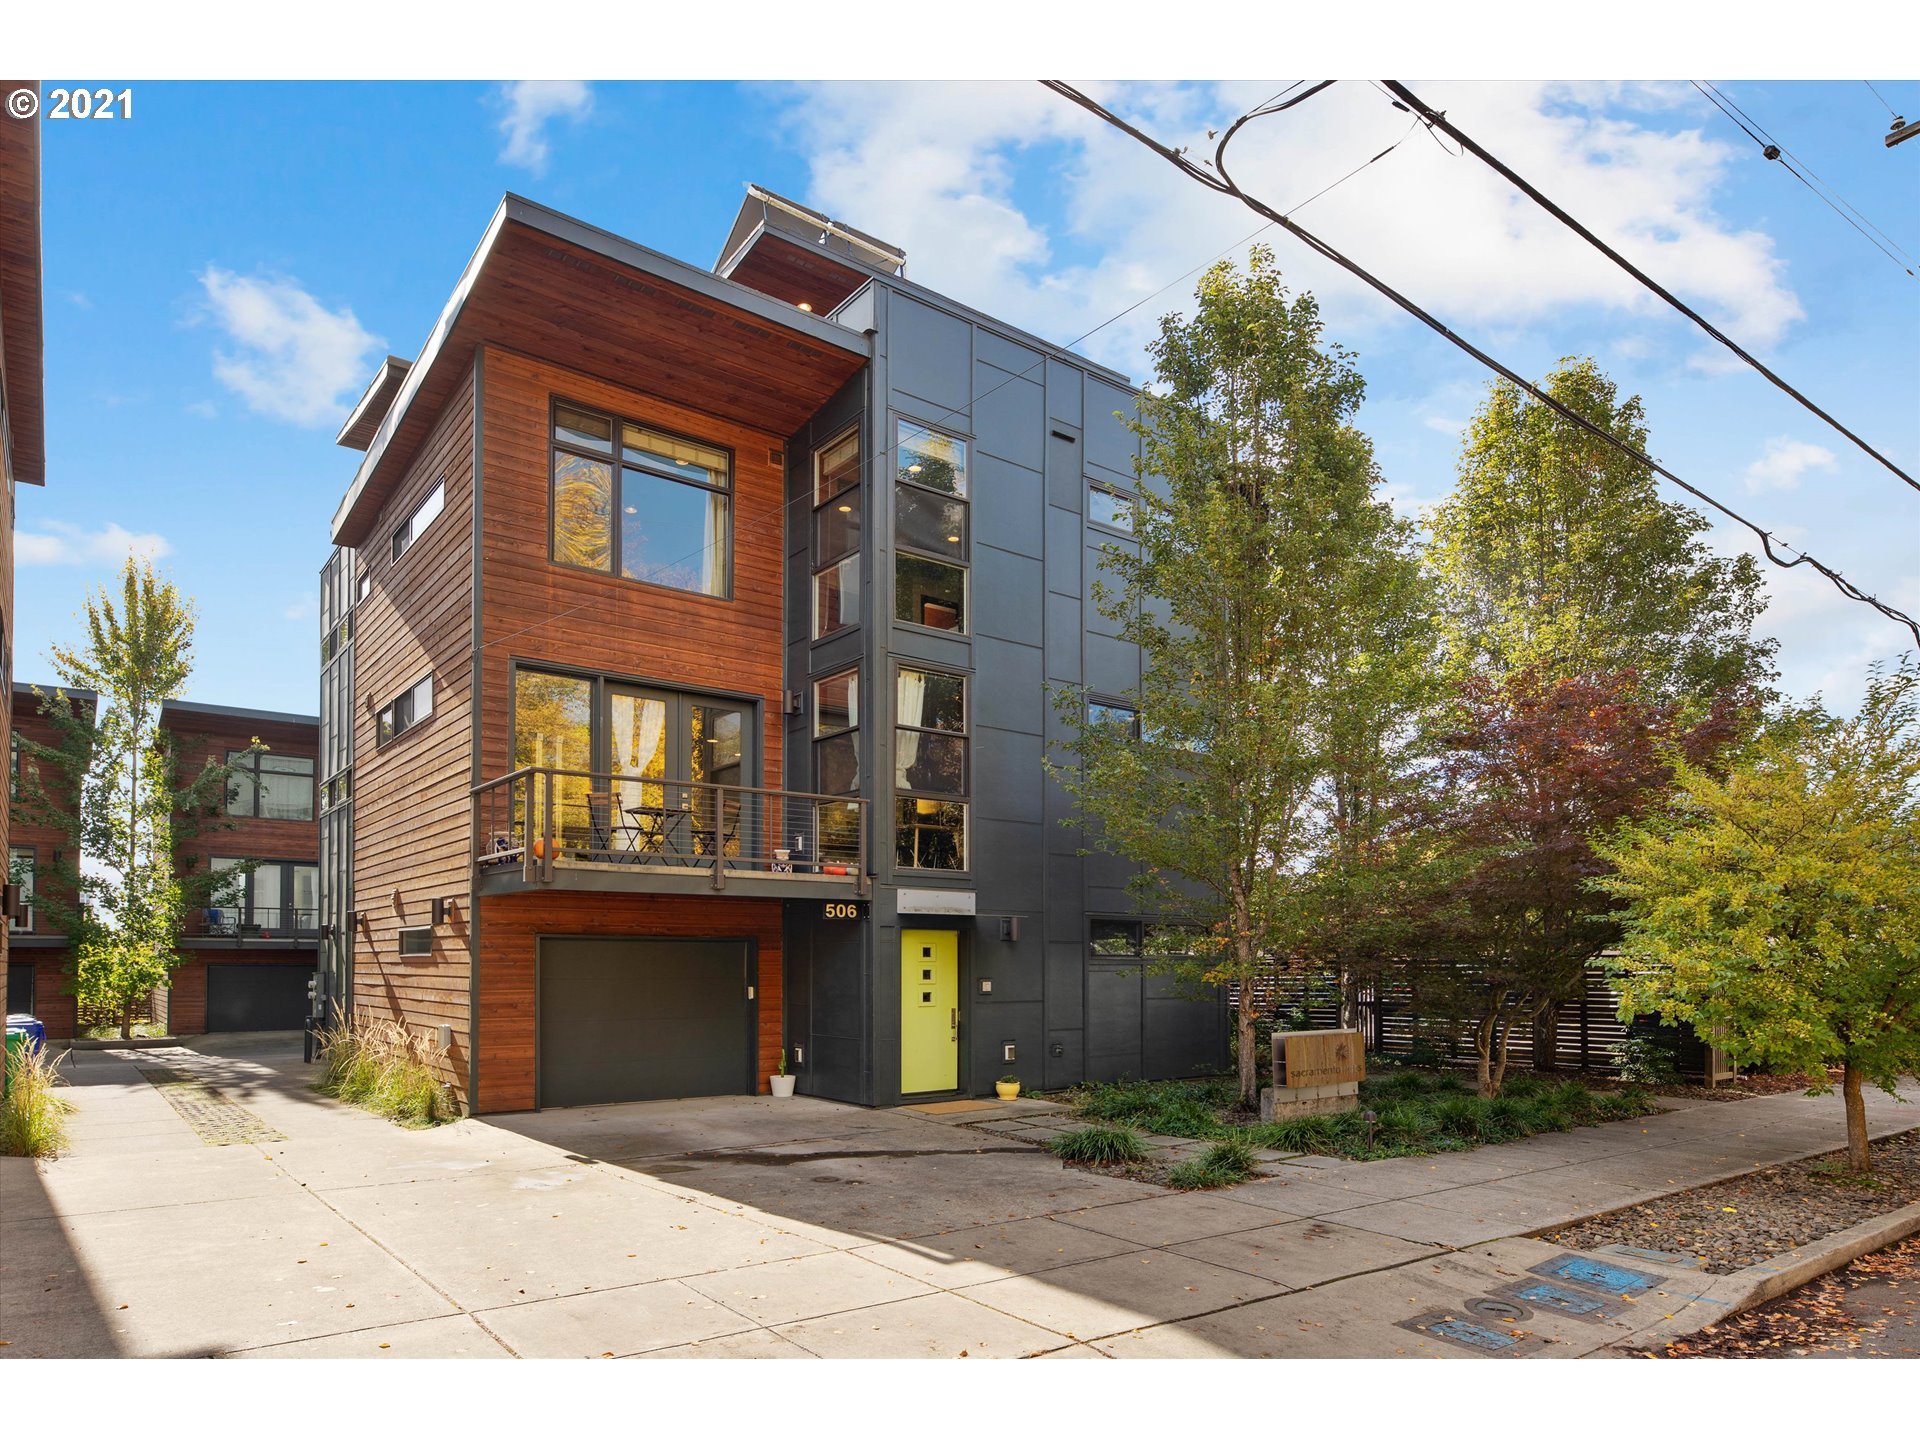 This dynamic, modern architectural gem is truly special. Ecologically built in 2009 in the heart of NE Portland, this four story townhouse has panoramic views of the city. Polished concrete/wood floors with radiant heat, floor to ceiling windows, open spaces with a superb layout. Main floor bedroom suite is perfect for WFH office or guest space. Gorgeous kitchen with handmade wood bar and half bath. Two suites on the the 3rd level with laundry. Upper deck, one car garage and your own elevator!